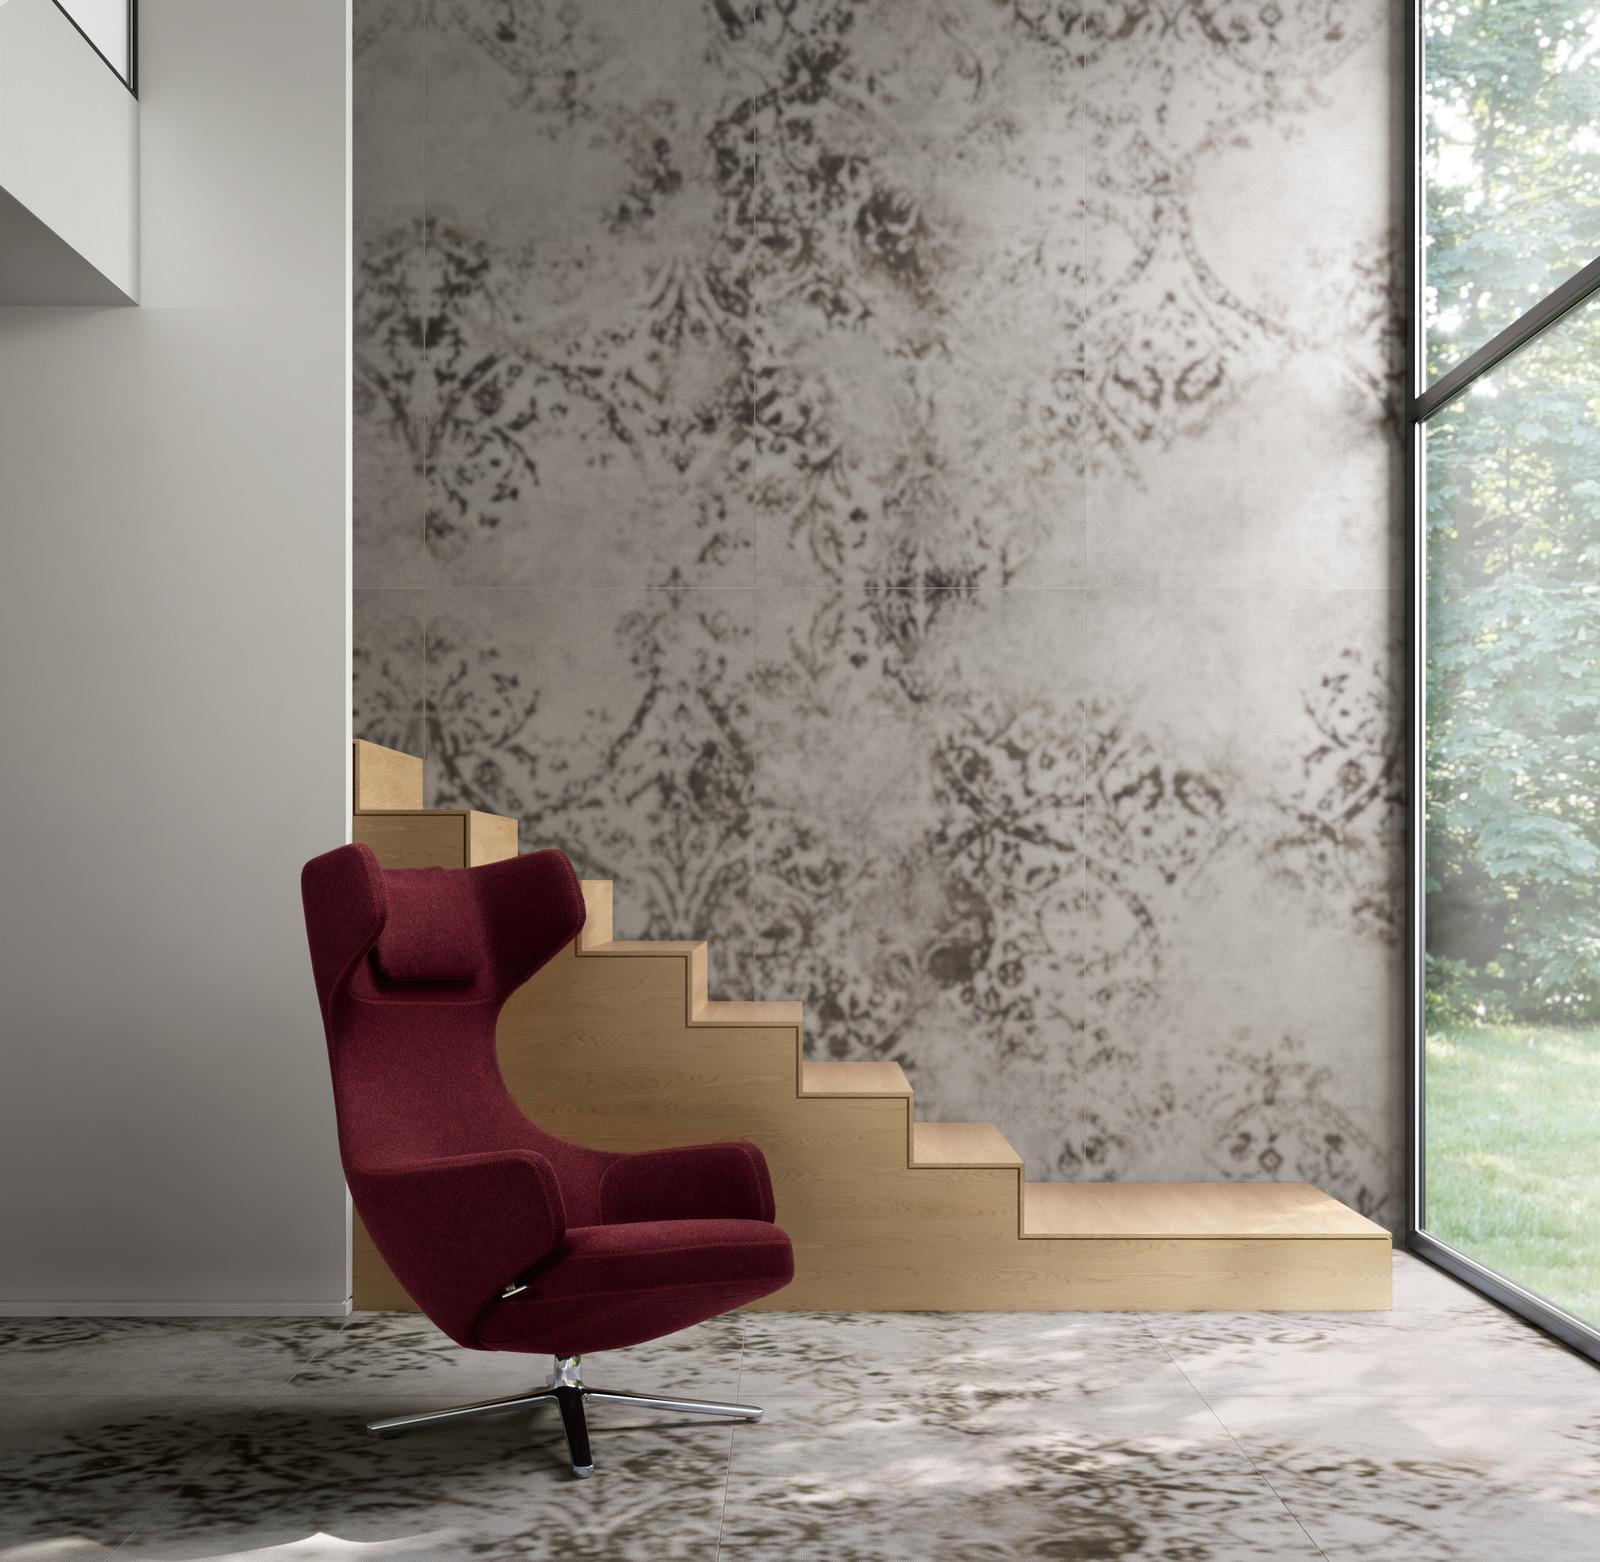 Grand carpet design cpv - Effetto Cotto e Cemento - Salotto